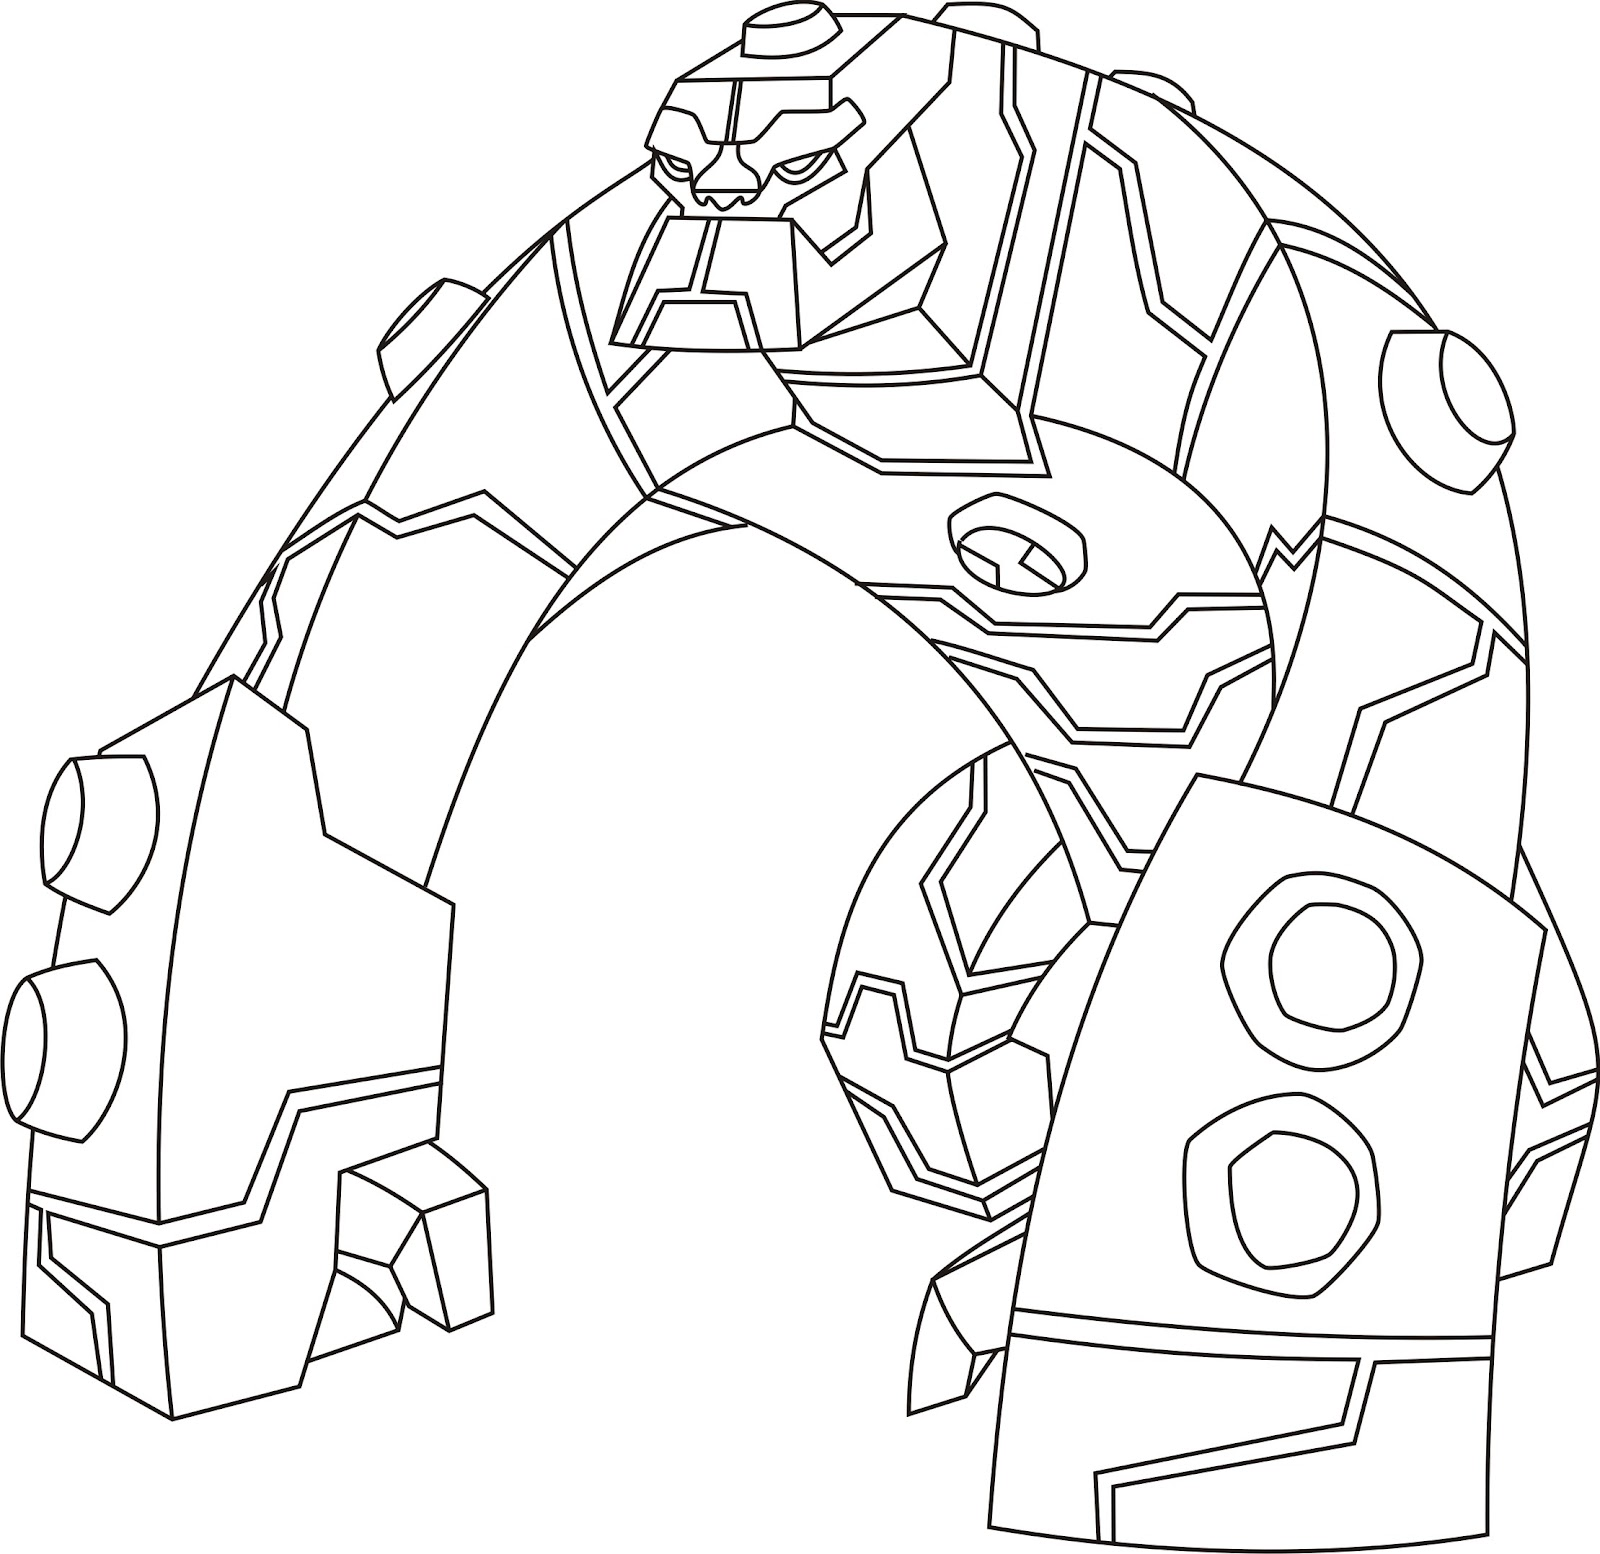 coloring pages ben 10 - photo#9